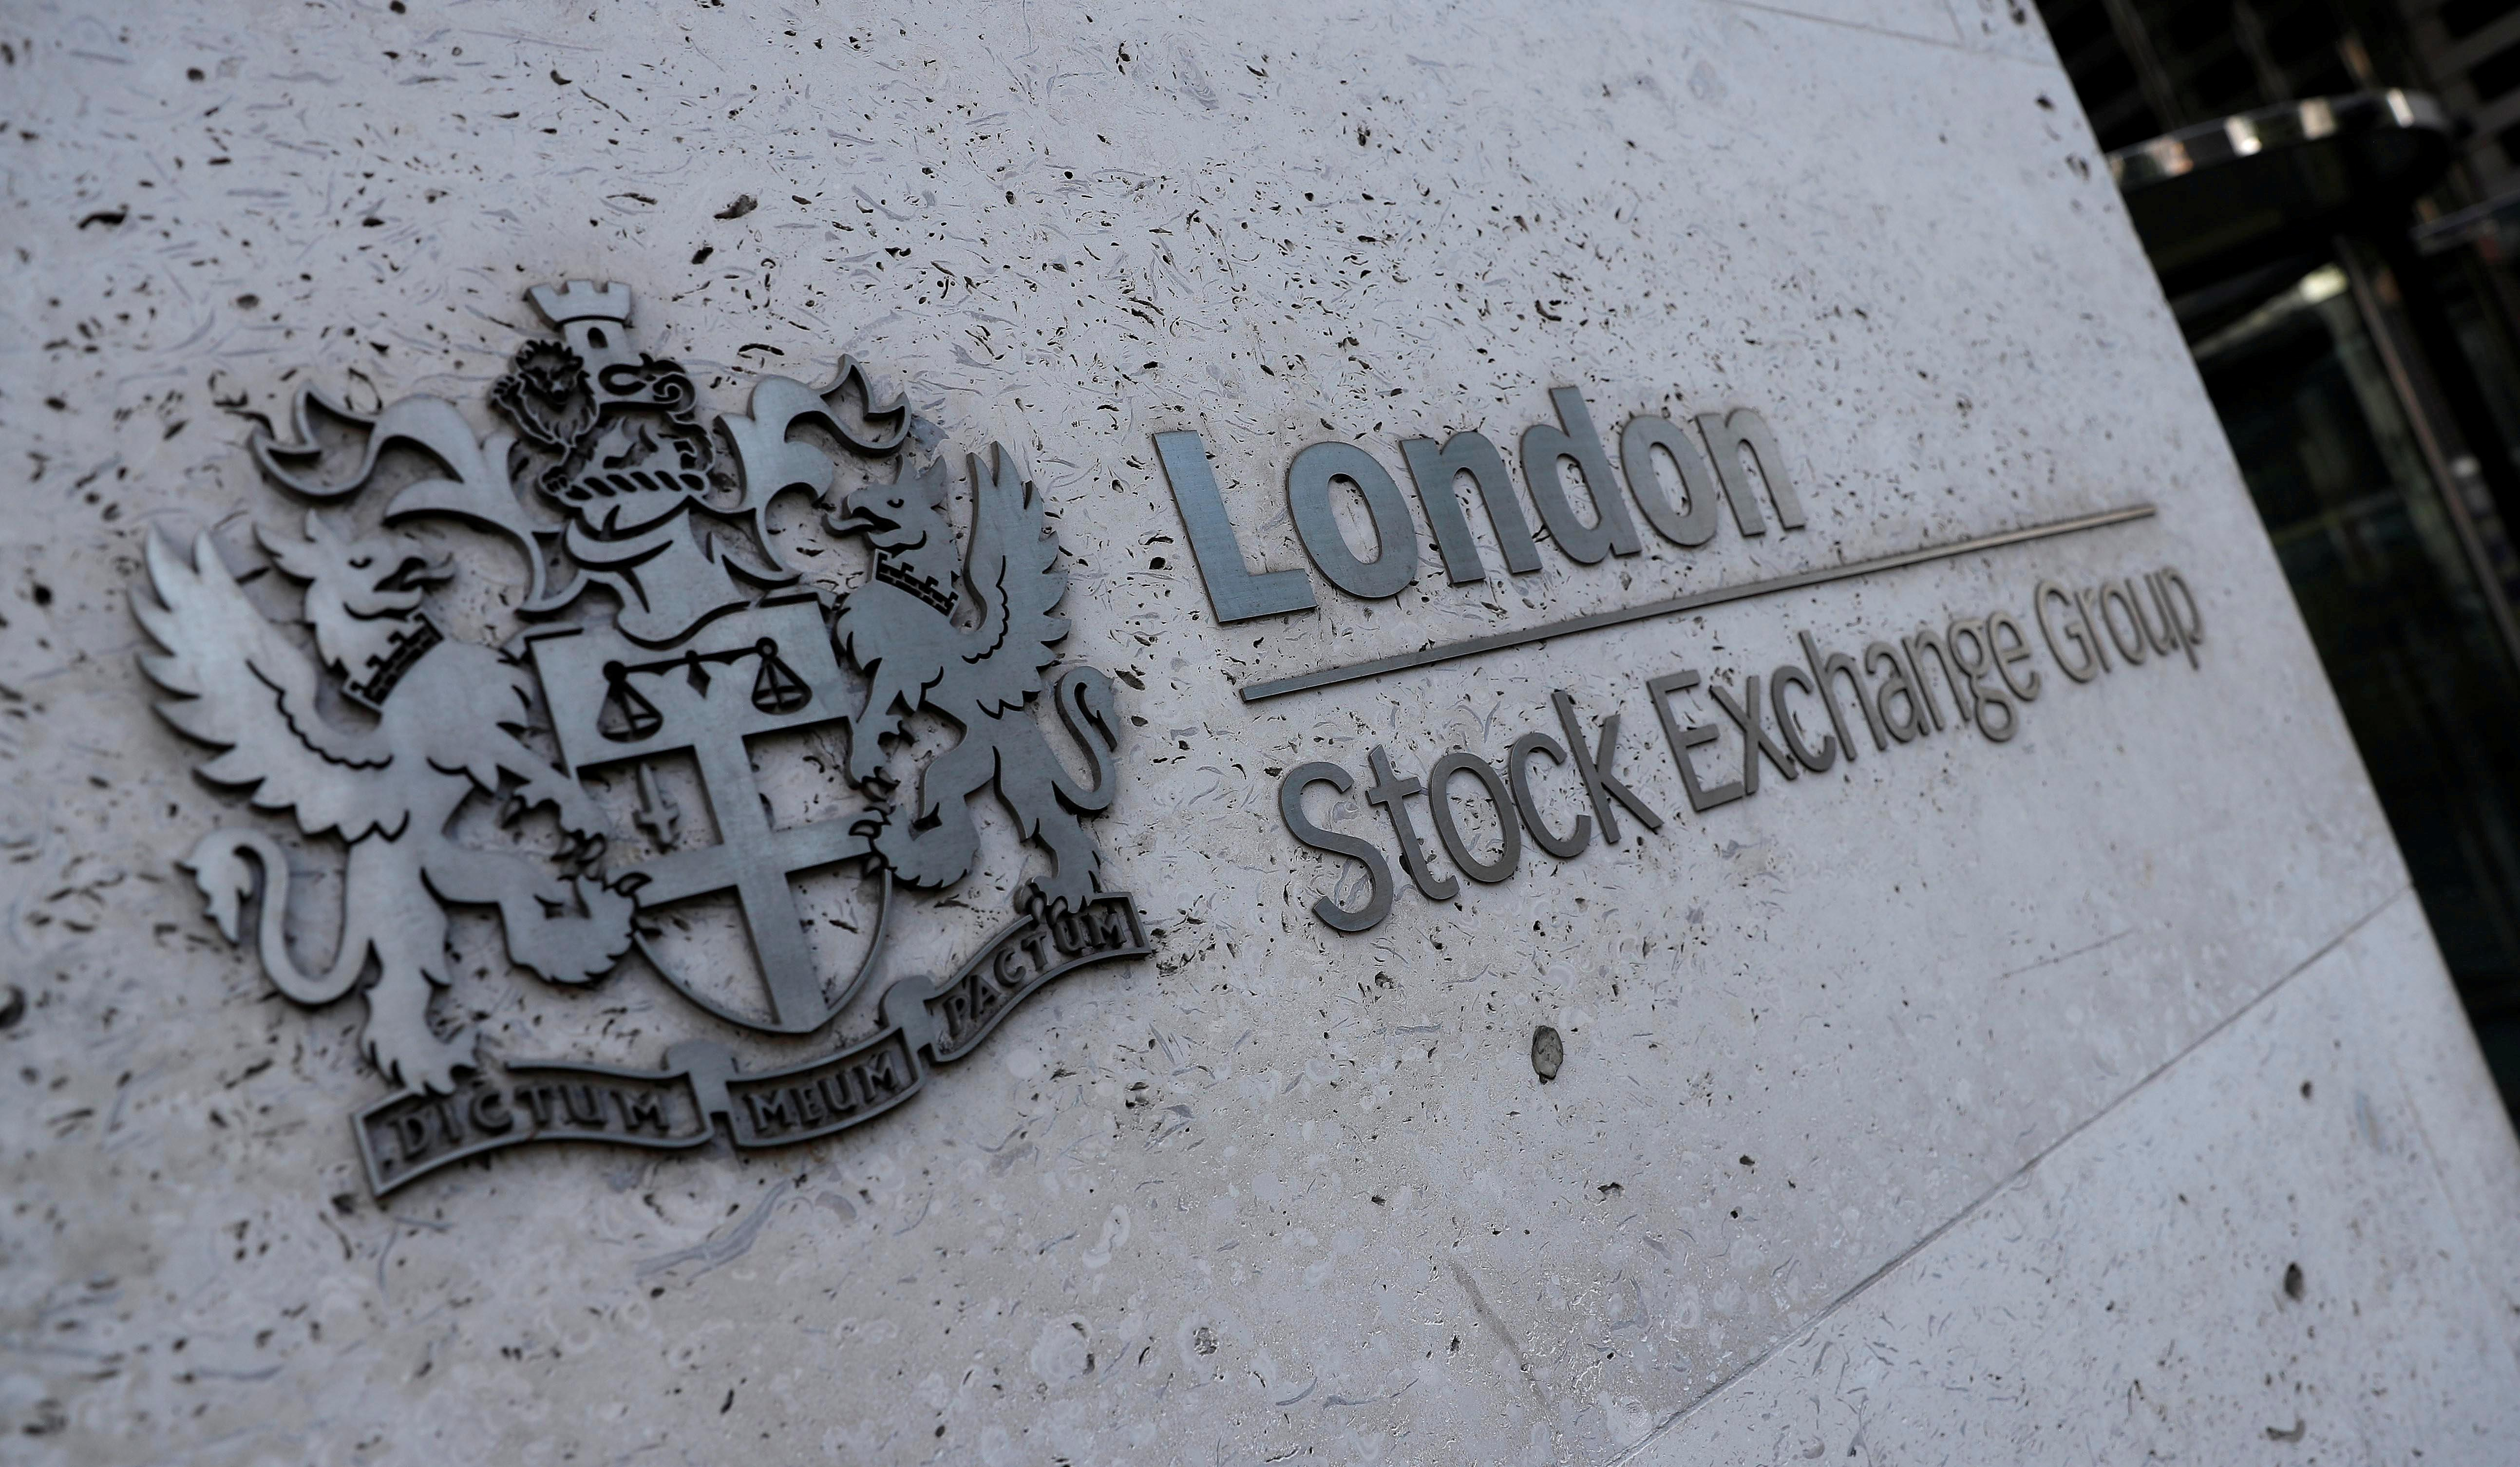 FTSE 100 plunges to six-month low on China's trade threat